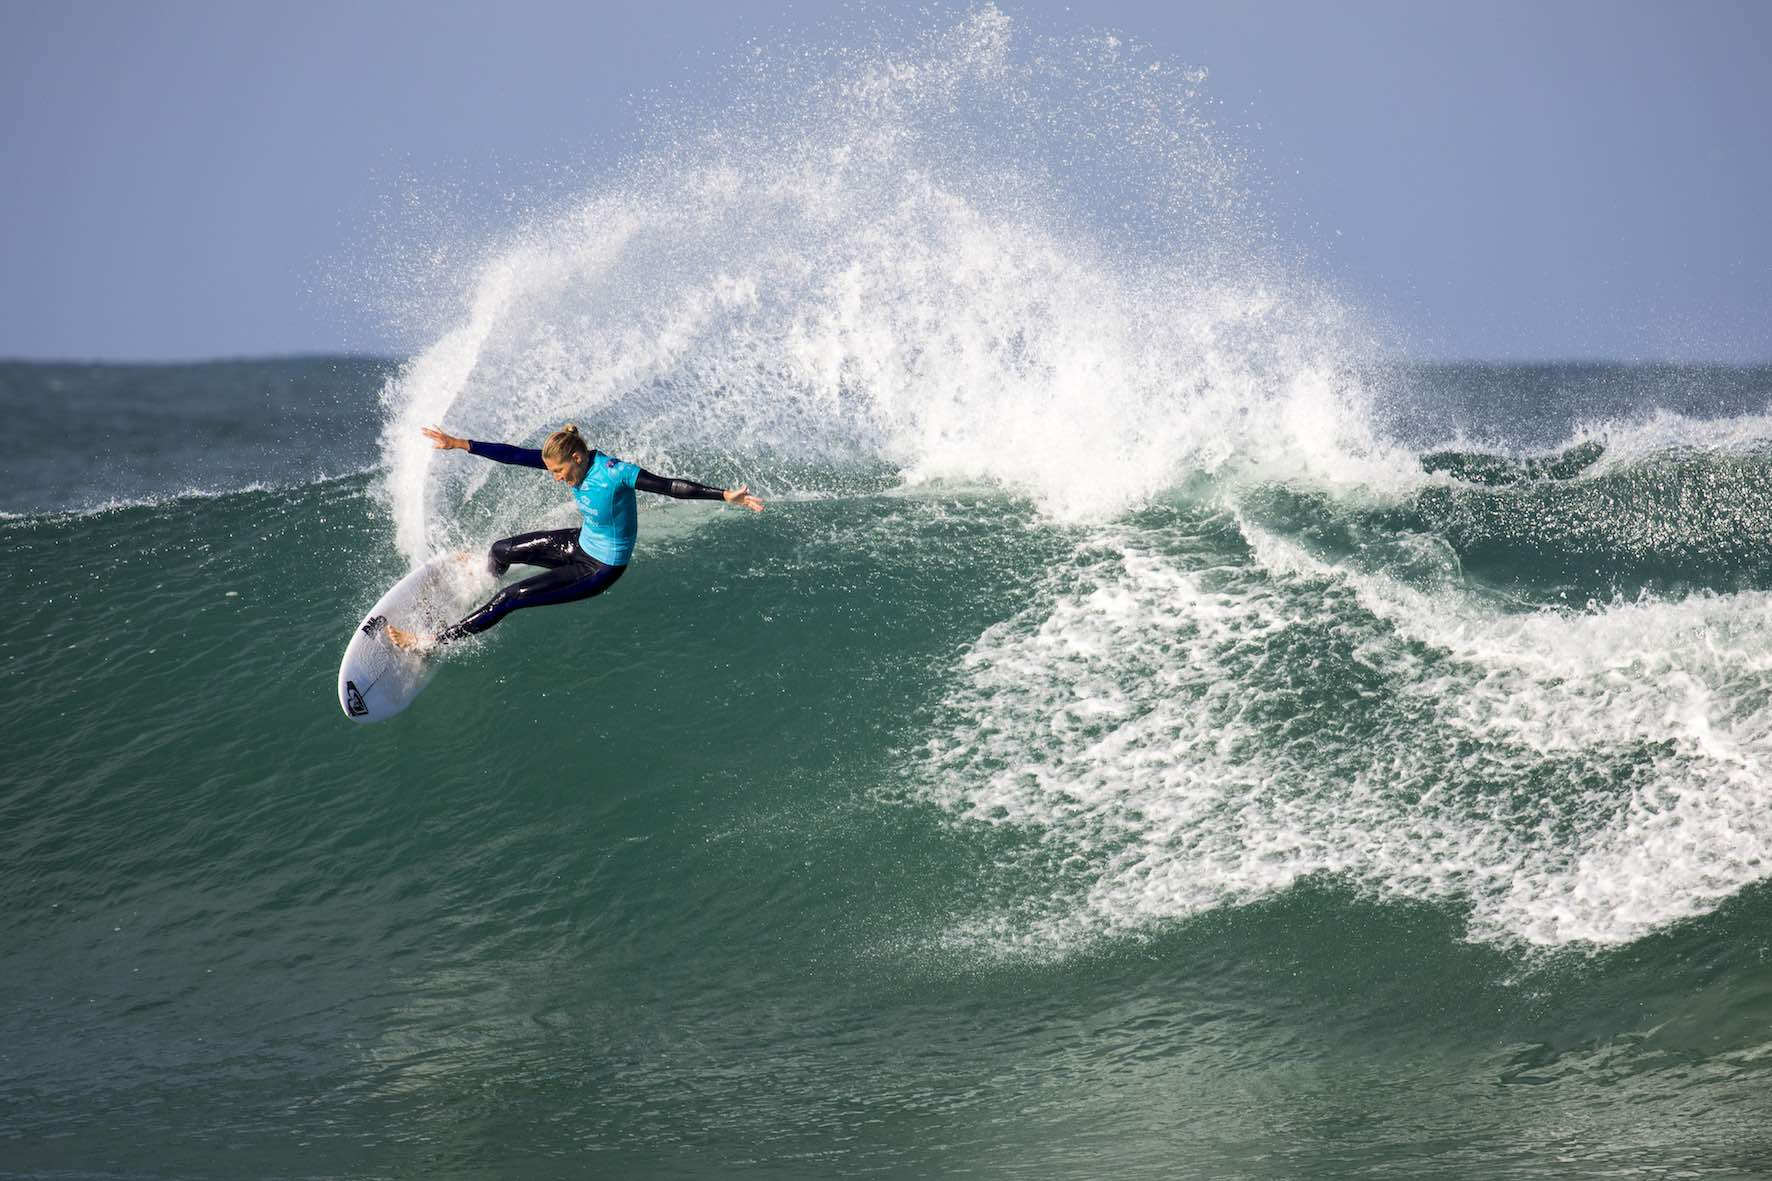 StephanieGilmore surfing her way to victory at the 2018 Corona Open J-Bay